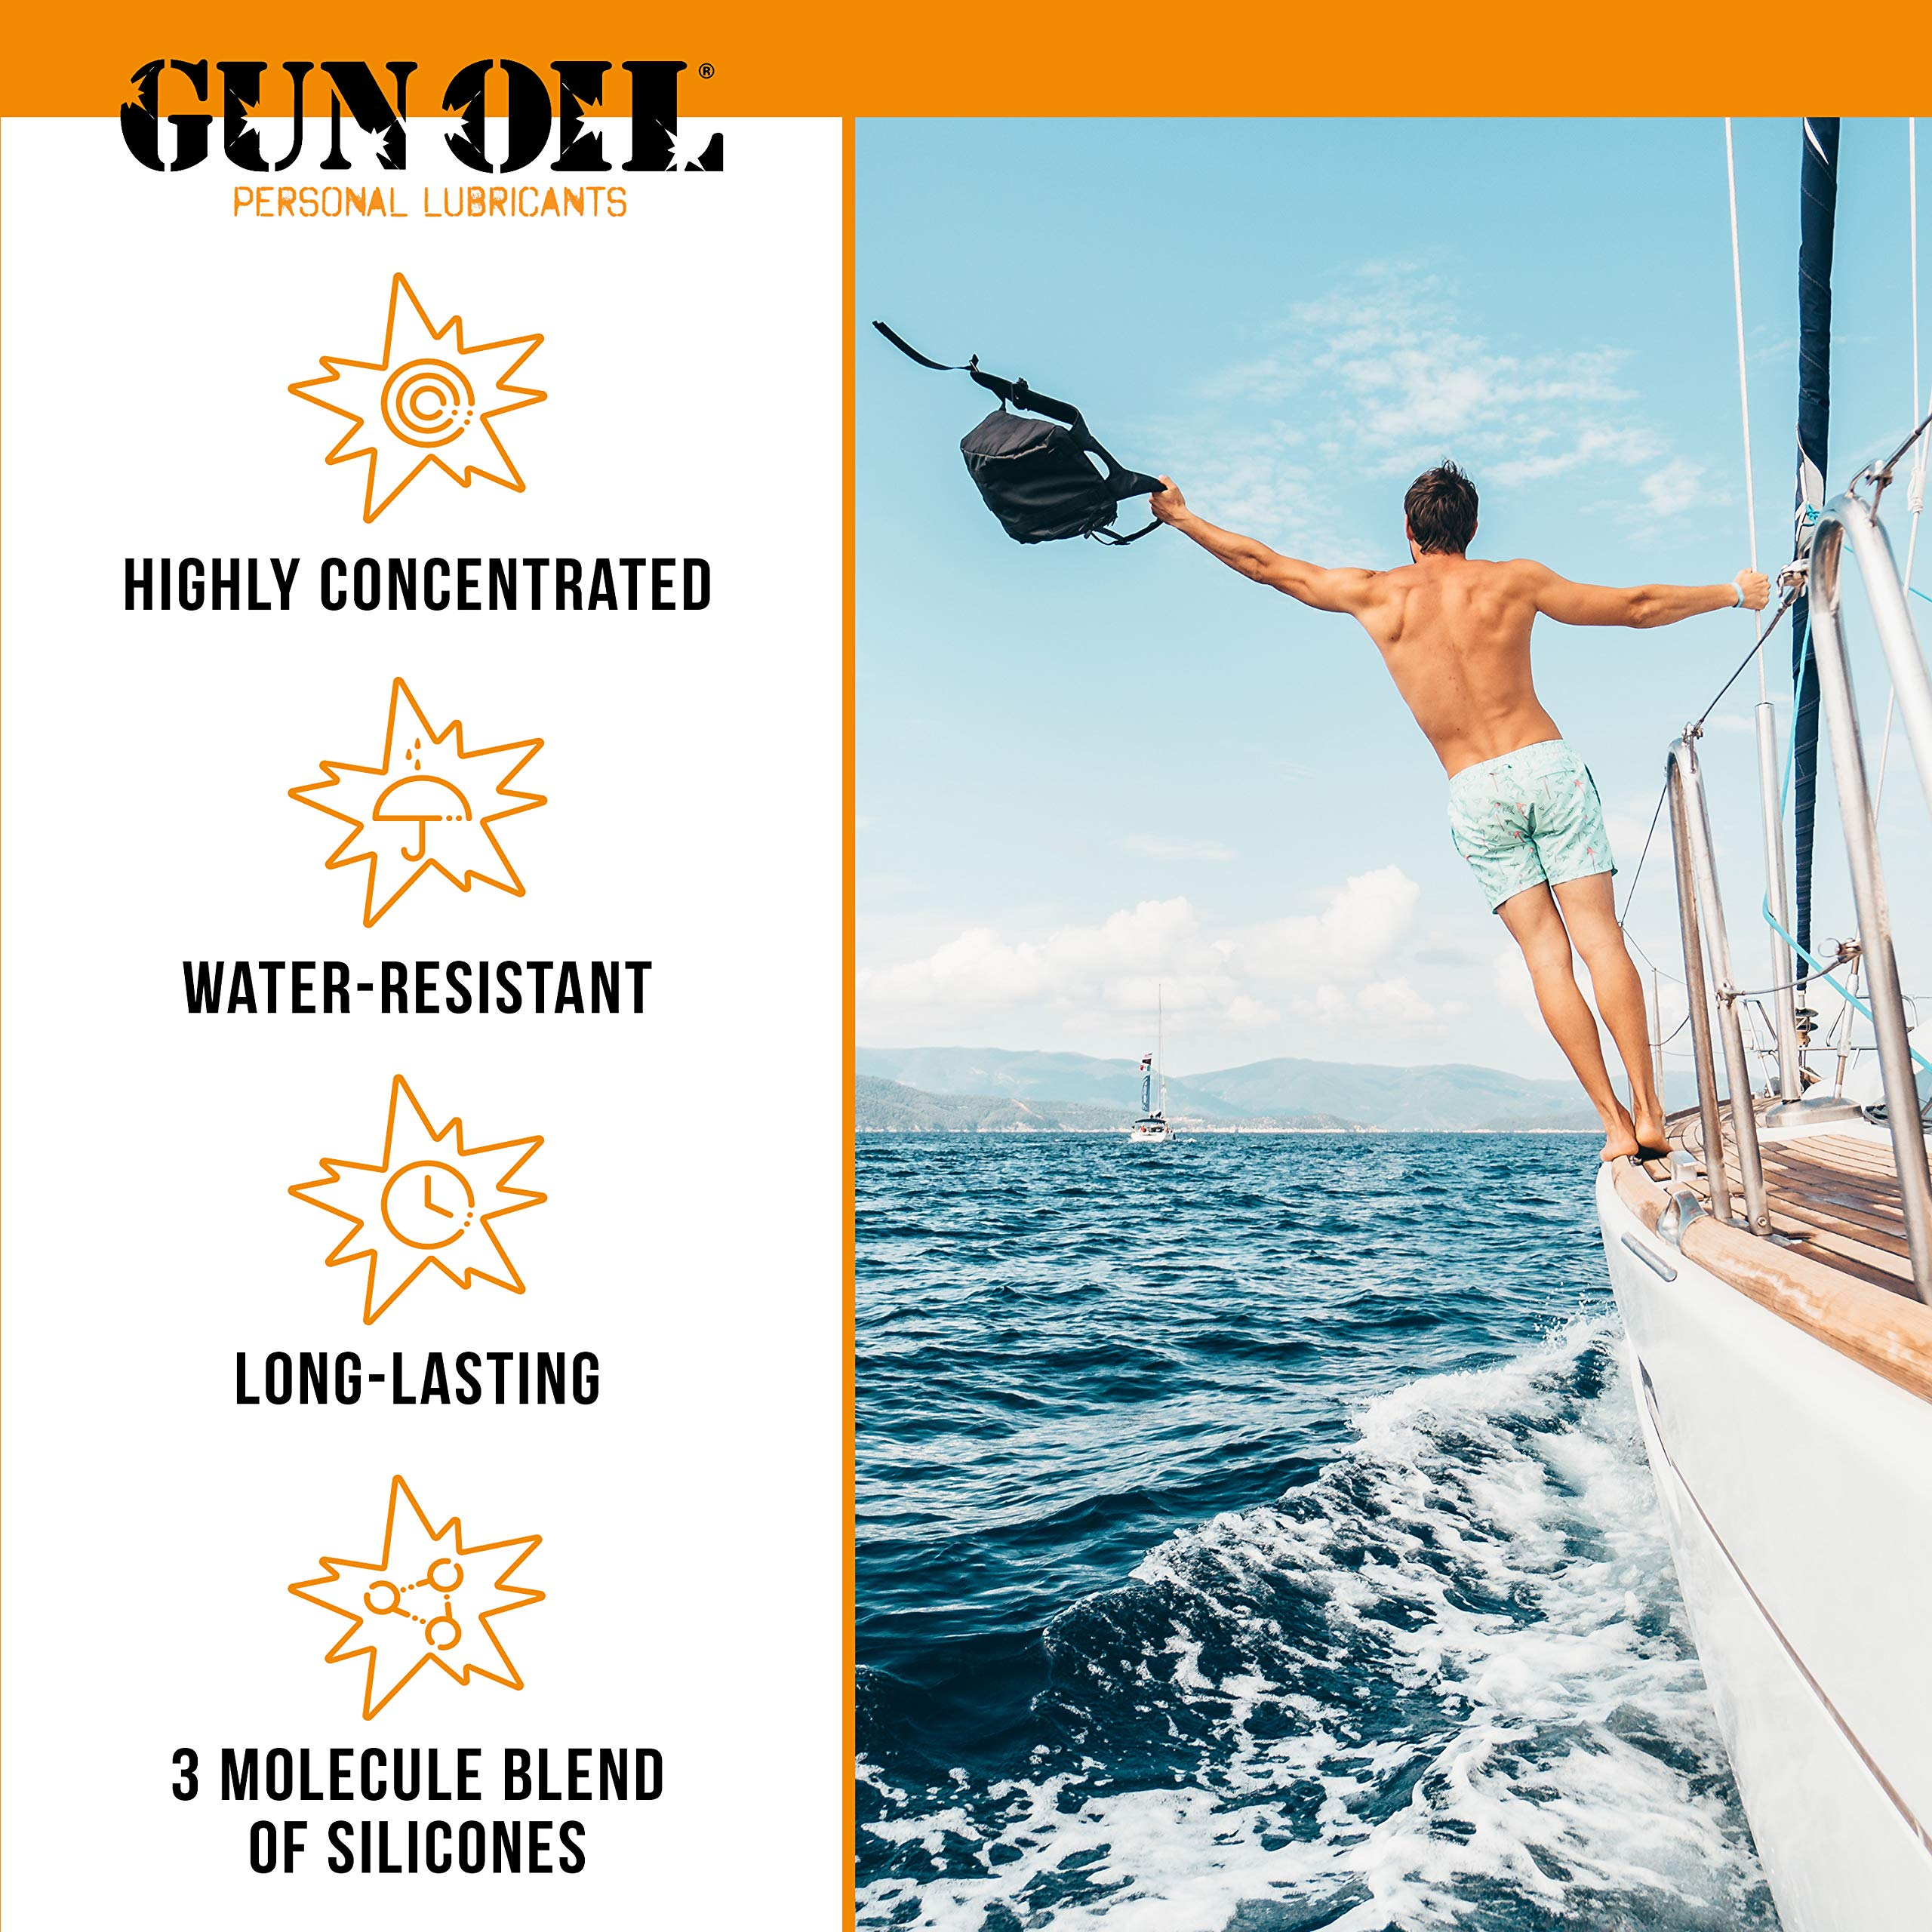 GUN OIL Silicone Lubricant - Hypoallergenic Silicone-Based Lubricant for Long-Lasting Lubrication (16 oz) by Gun Oil (Image #3)